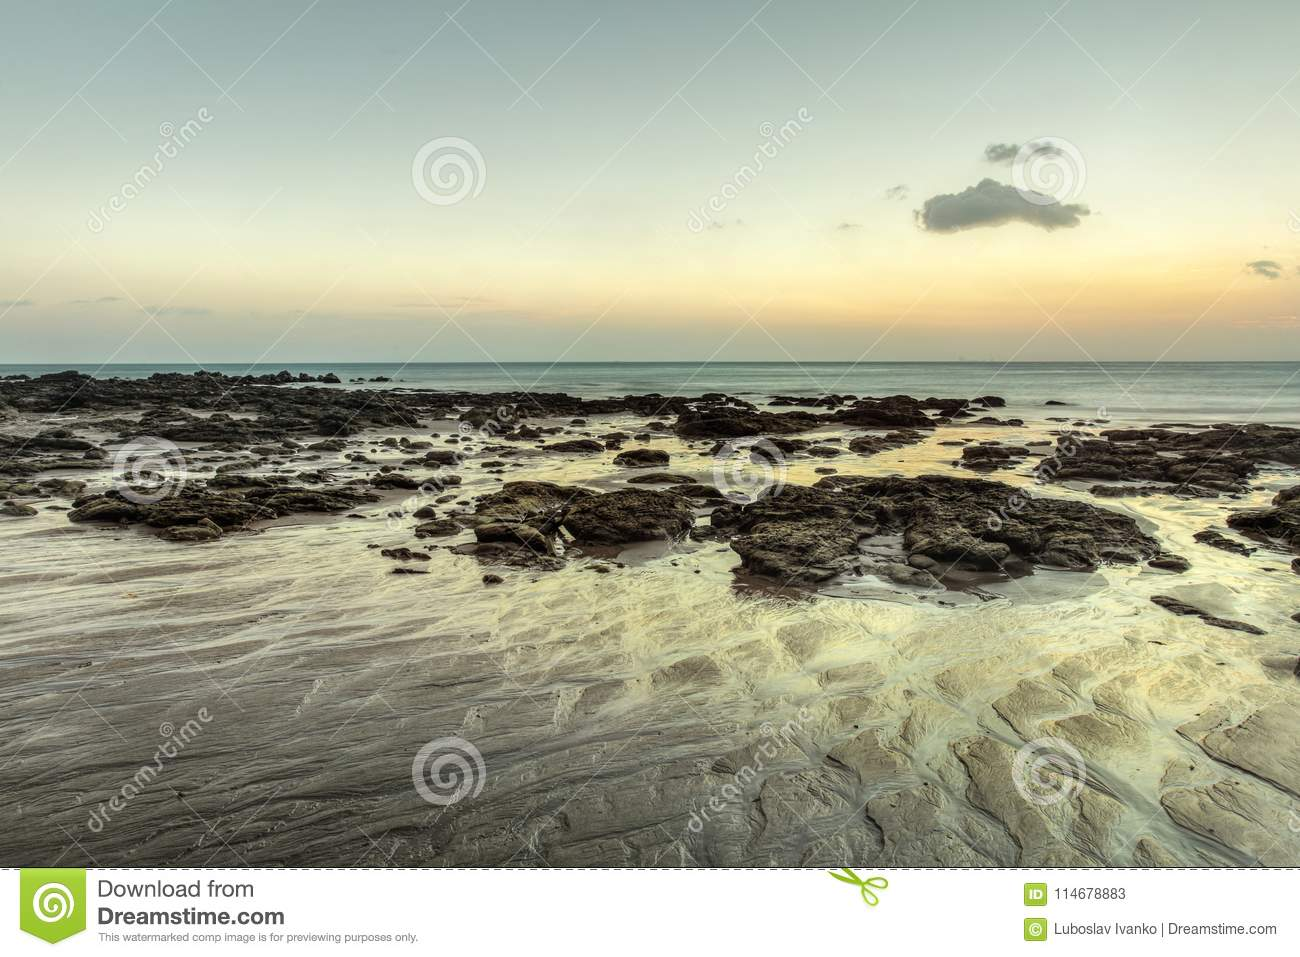 Beach in evening, after sunset during low tide showing sand form